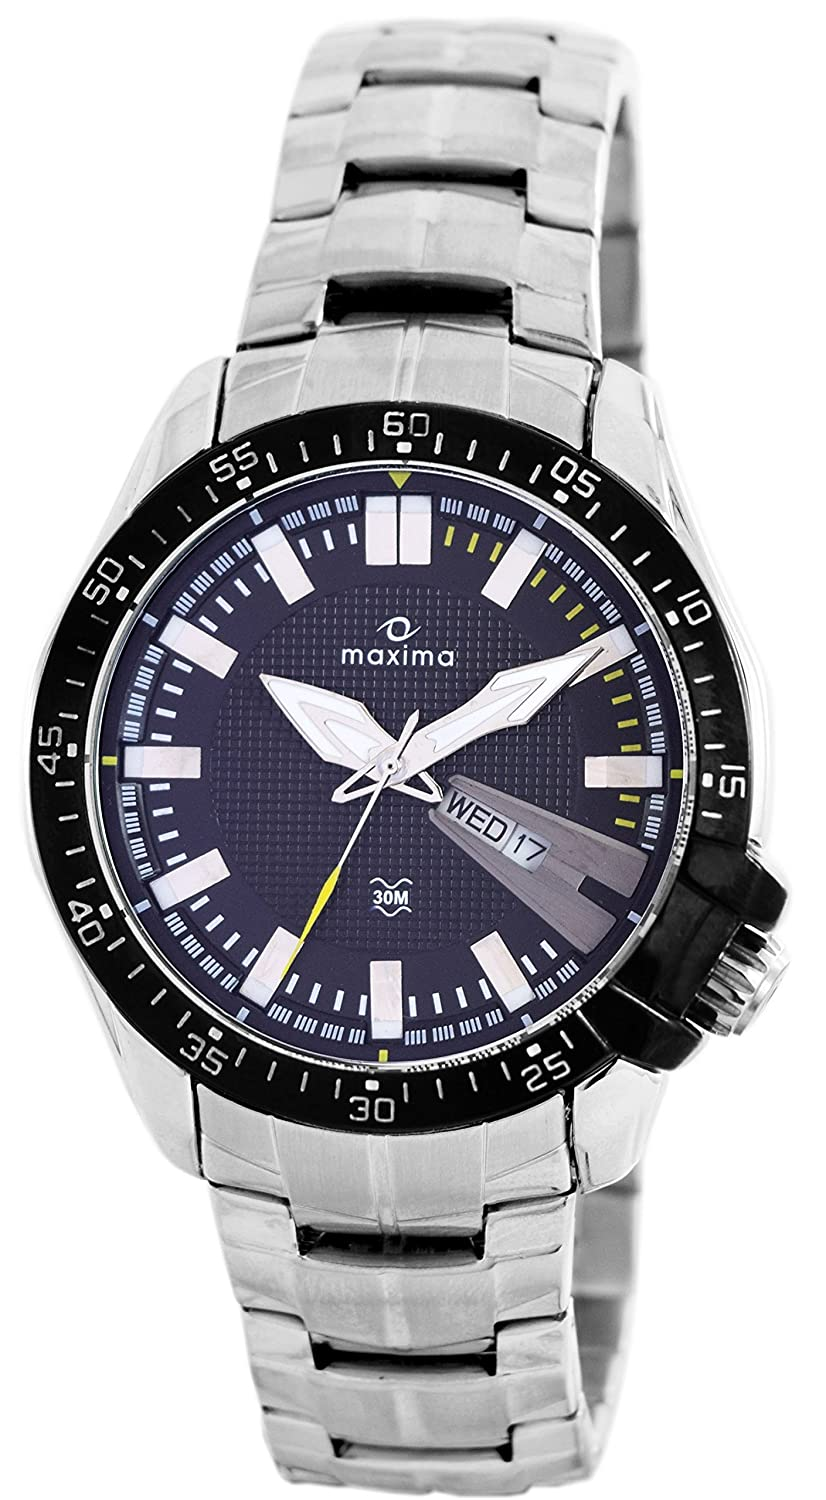 Maxima Best Mens Watches under 5000 Rupees in India